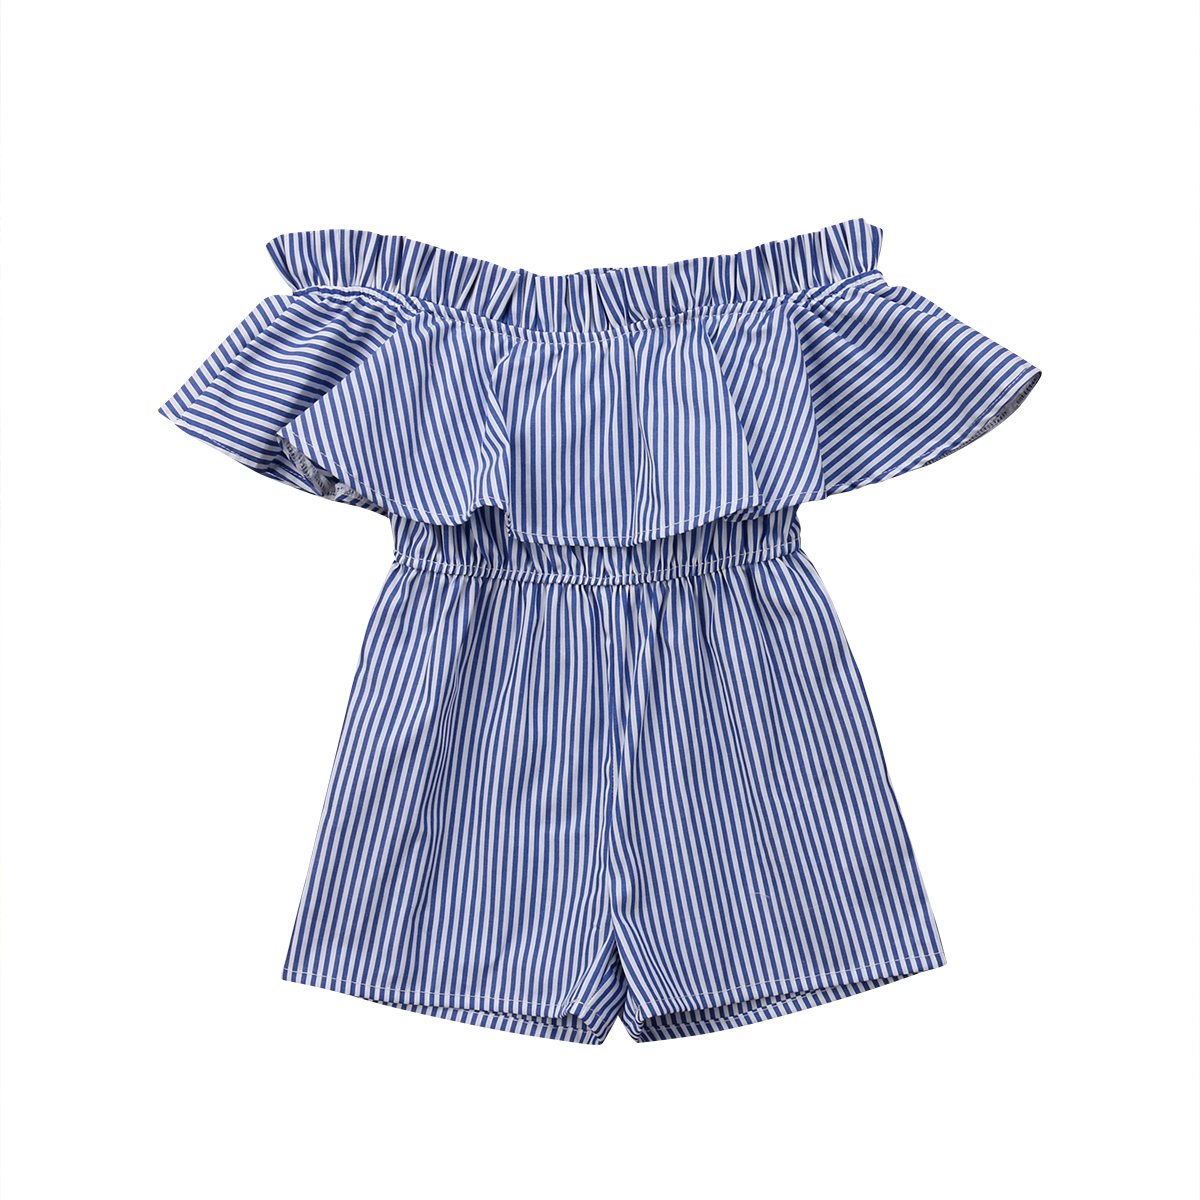 2018 Newborn Cute Infant Baby Girl Fashion Summer Blue Off Shouler Striped Ruffles Romper Jumpsuit Outfit Clothes 6M-5T